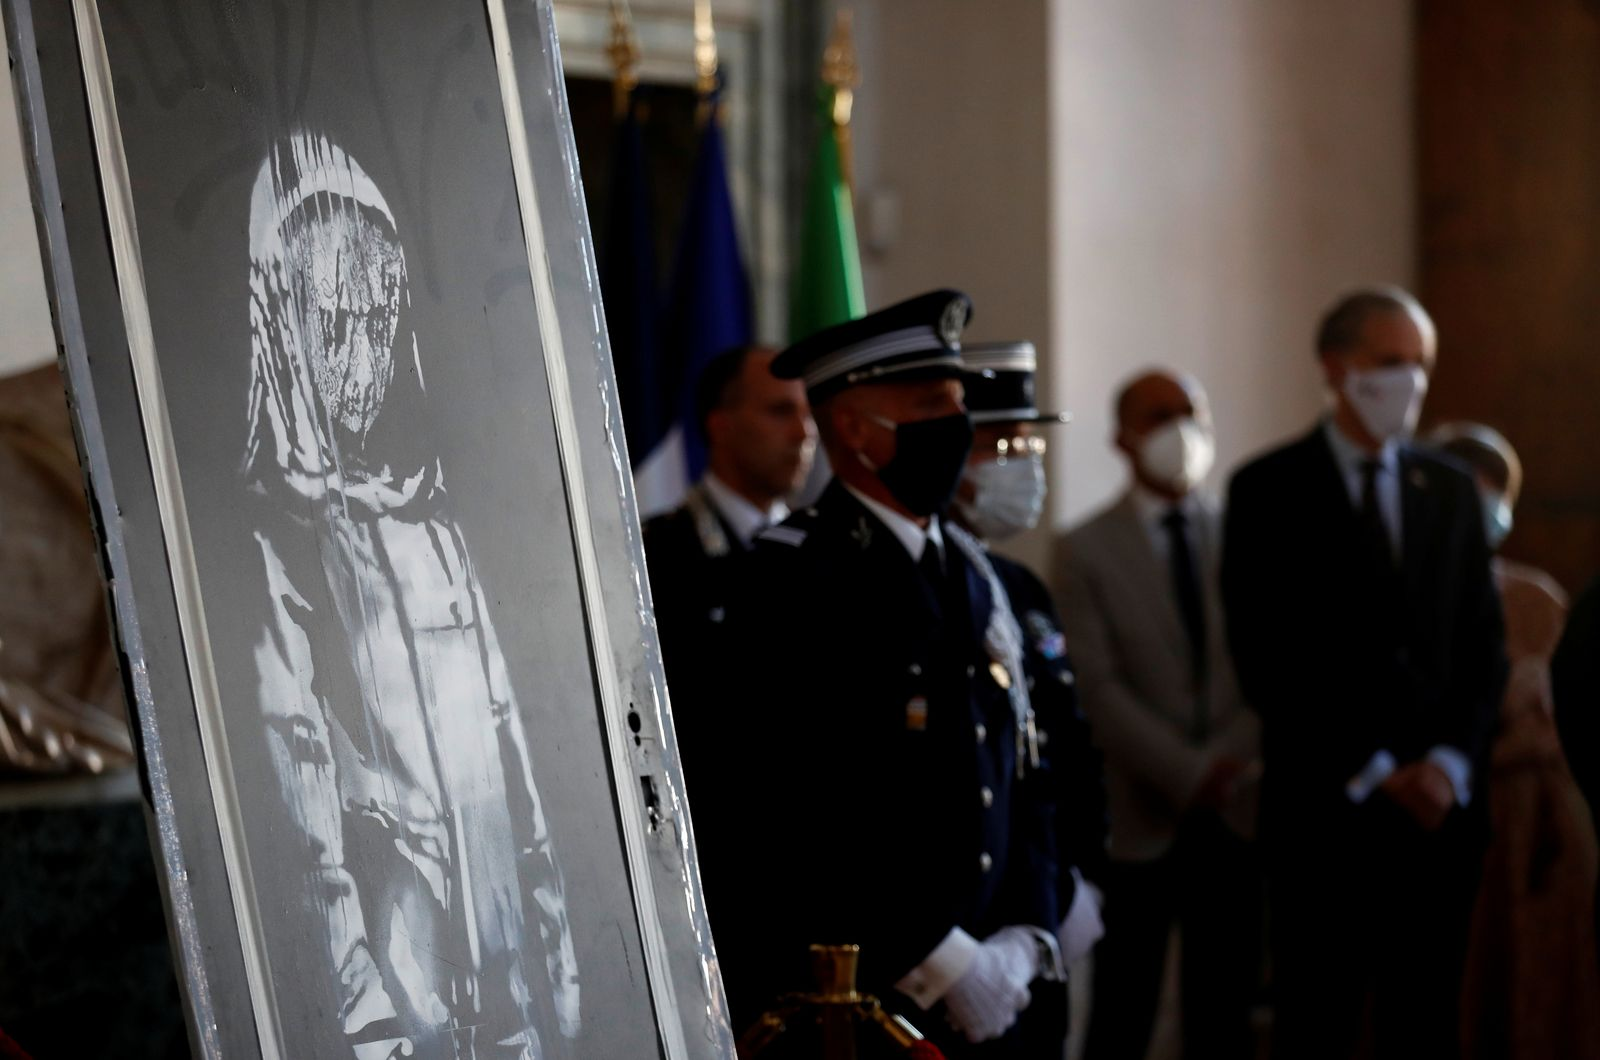 A mural by anonymous British street artist Banksy is seen during the ceremony to return to France at the French embassy in Rome